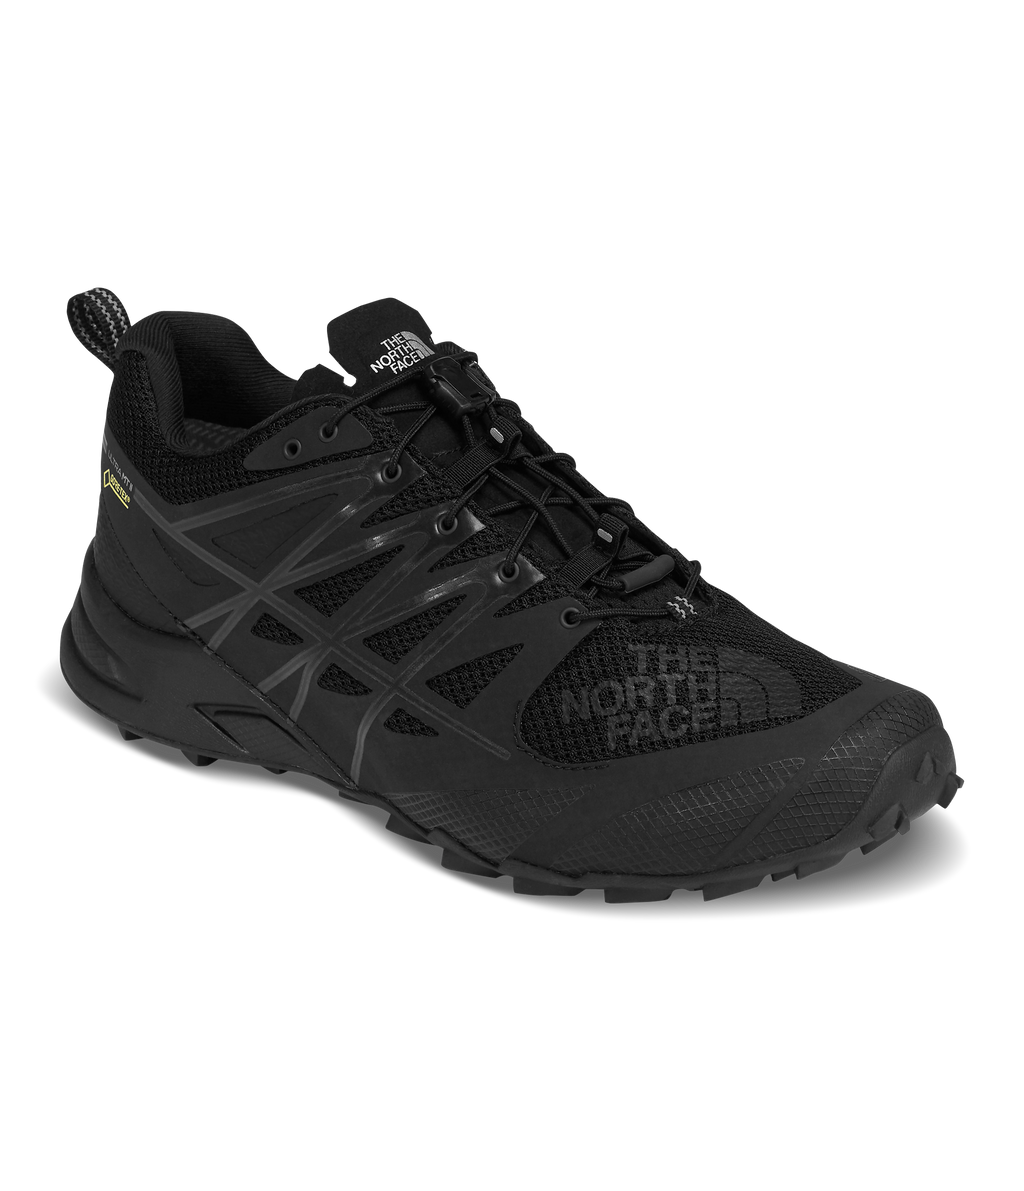 Men's Ultra MT II GTX - Black